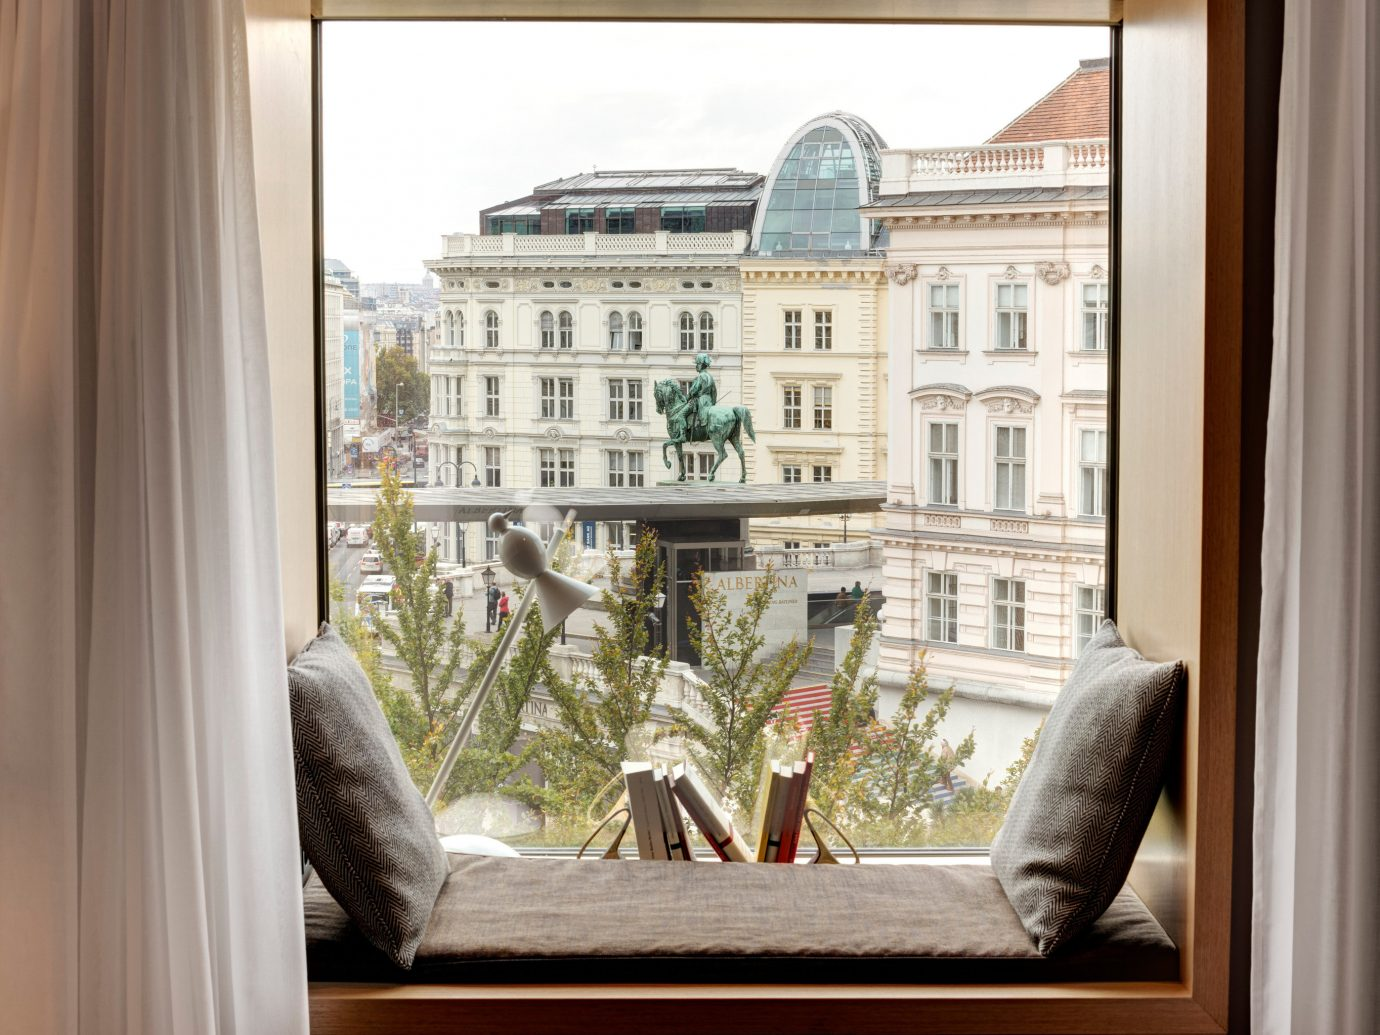 Austria europe Hotels Vienna window cat indoor property home interior design apartment Balcony house picture frame window treatment furniture sash window door facade